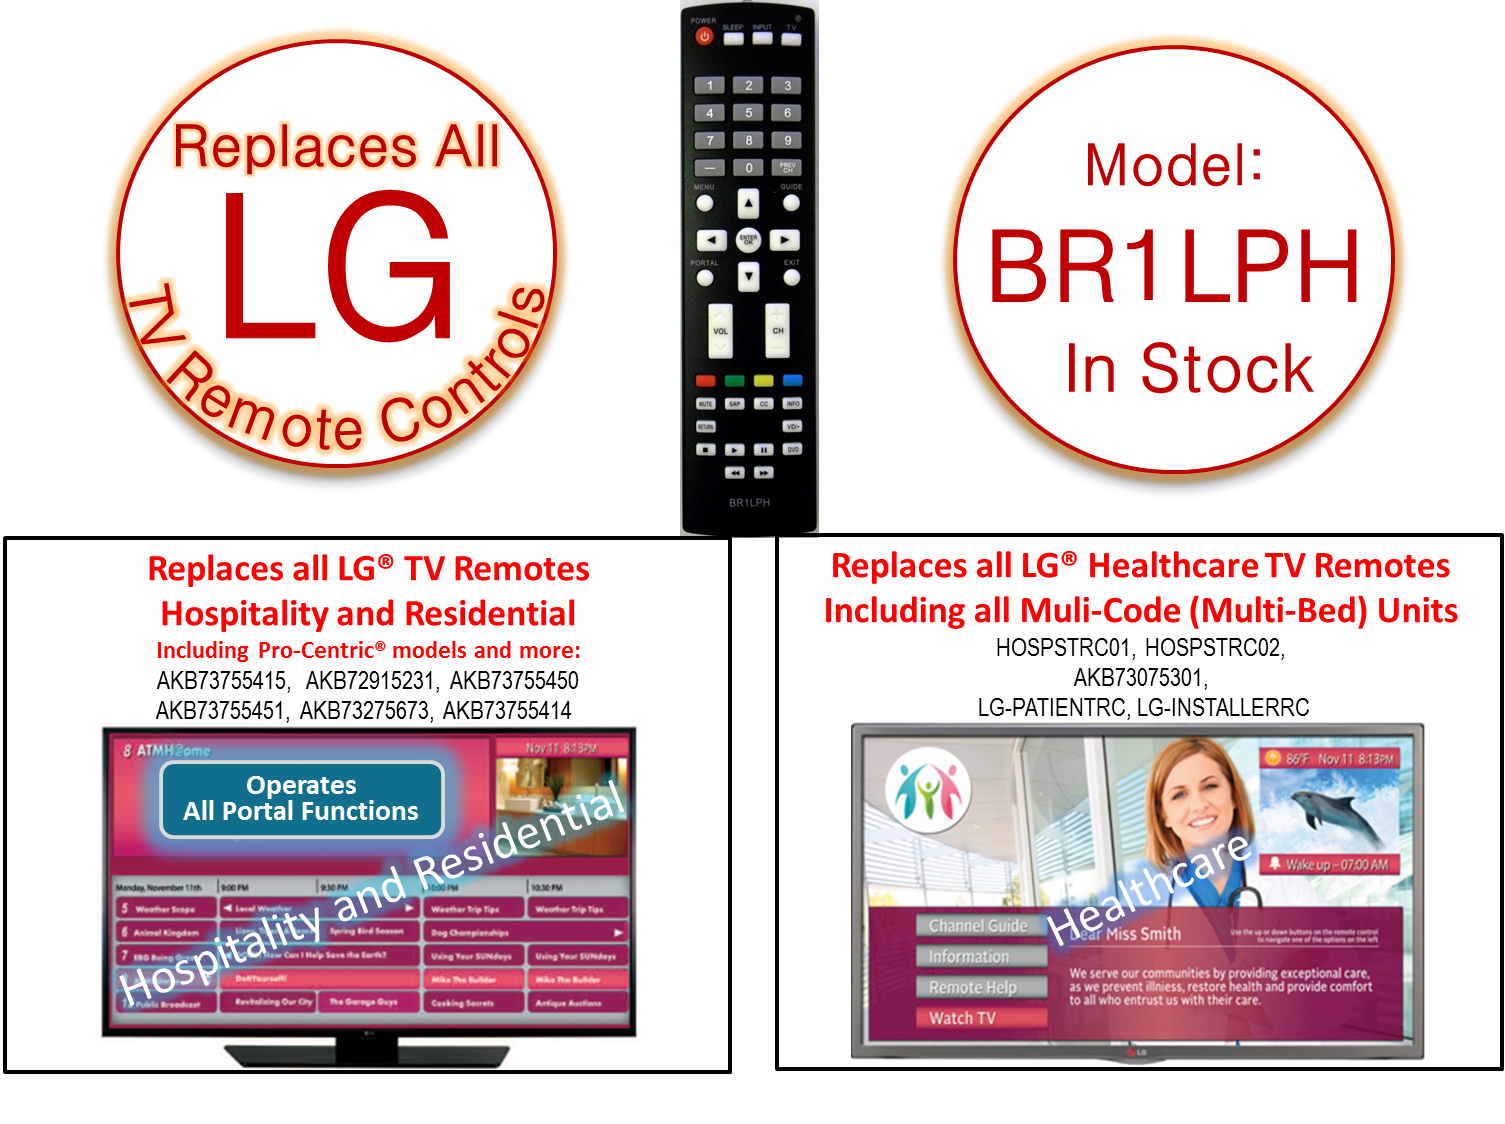 BR1LPH Replacement Remote Control For all LG TVs